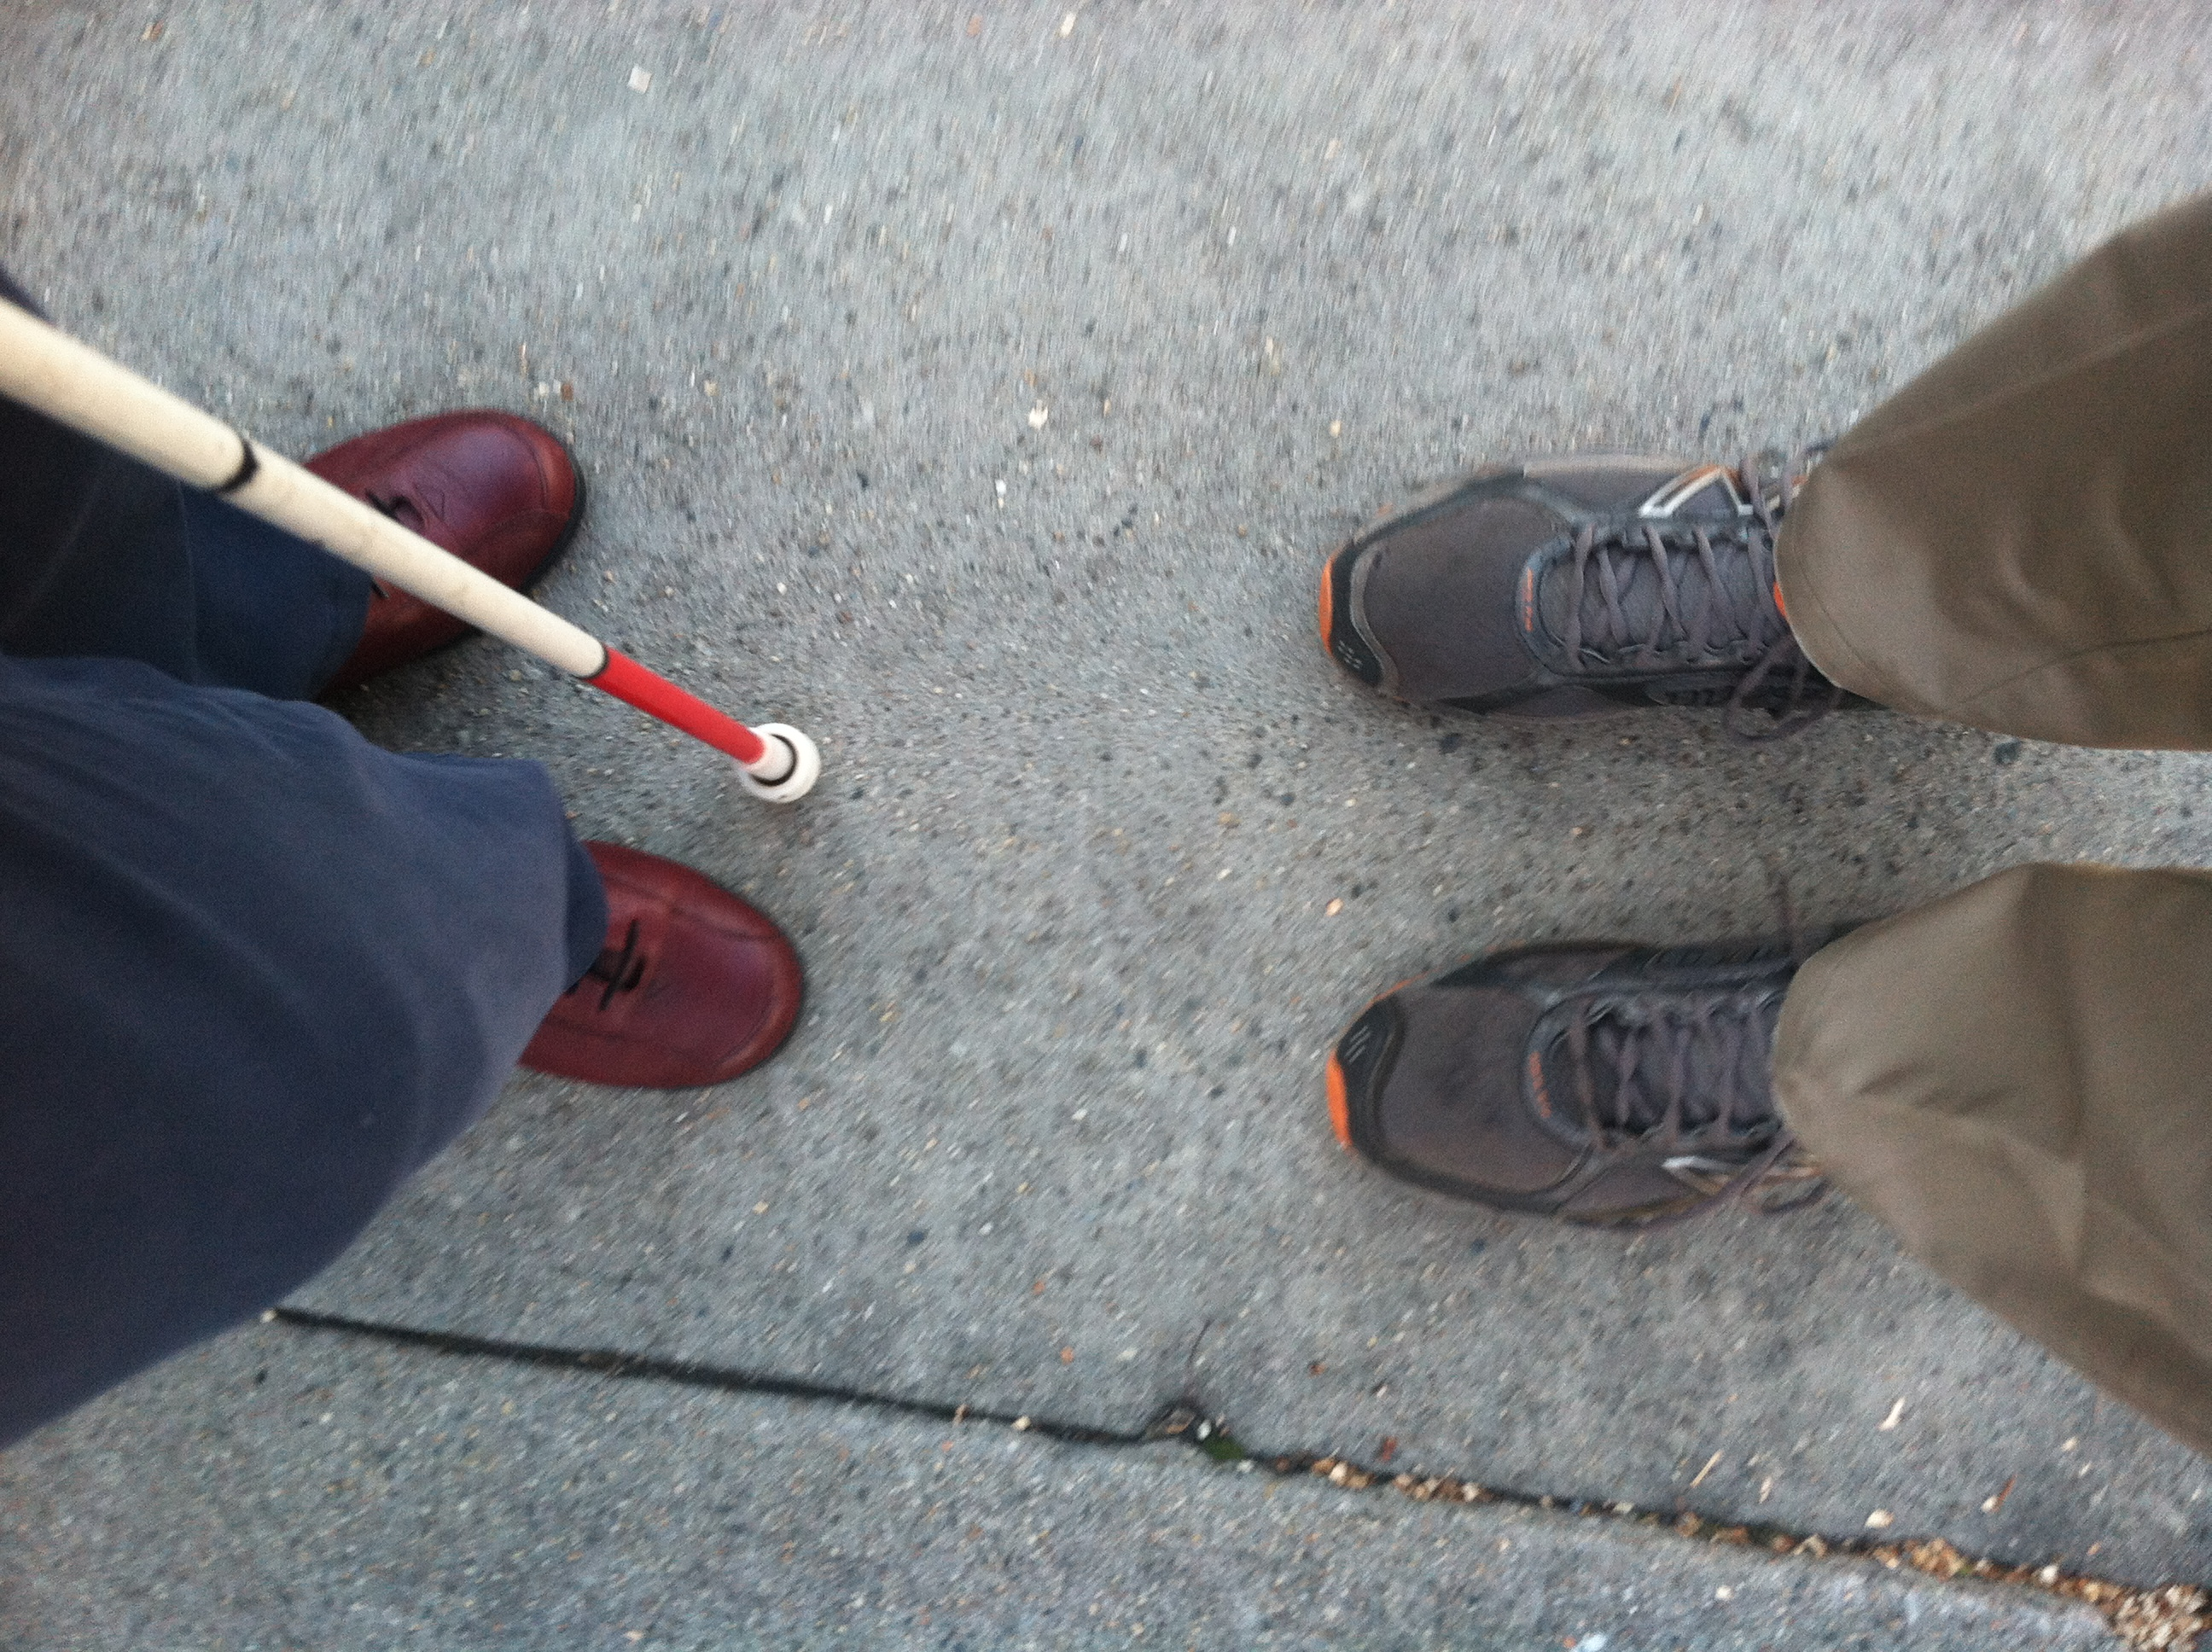 Two pairs of feet meeting on a sidewalk, with a white cane tip in between.